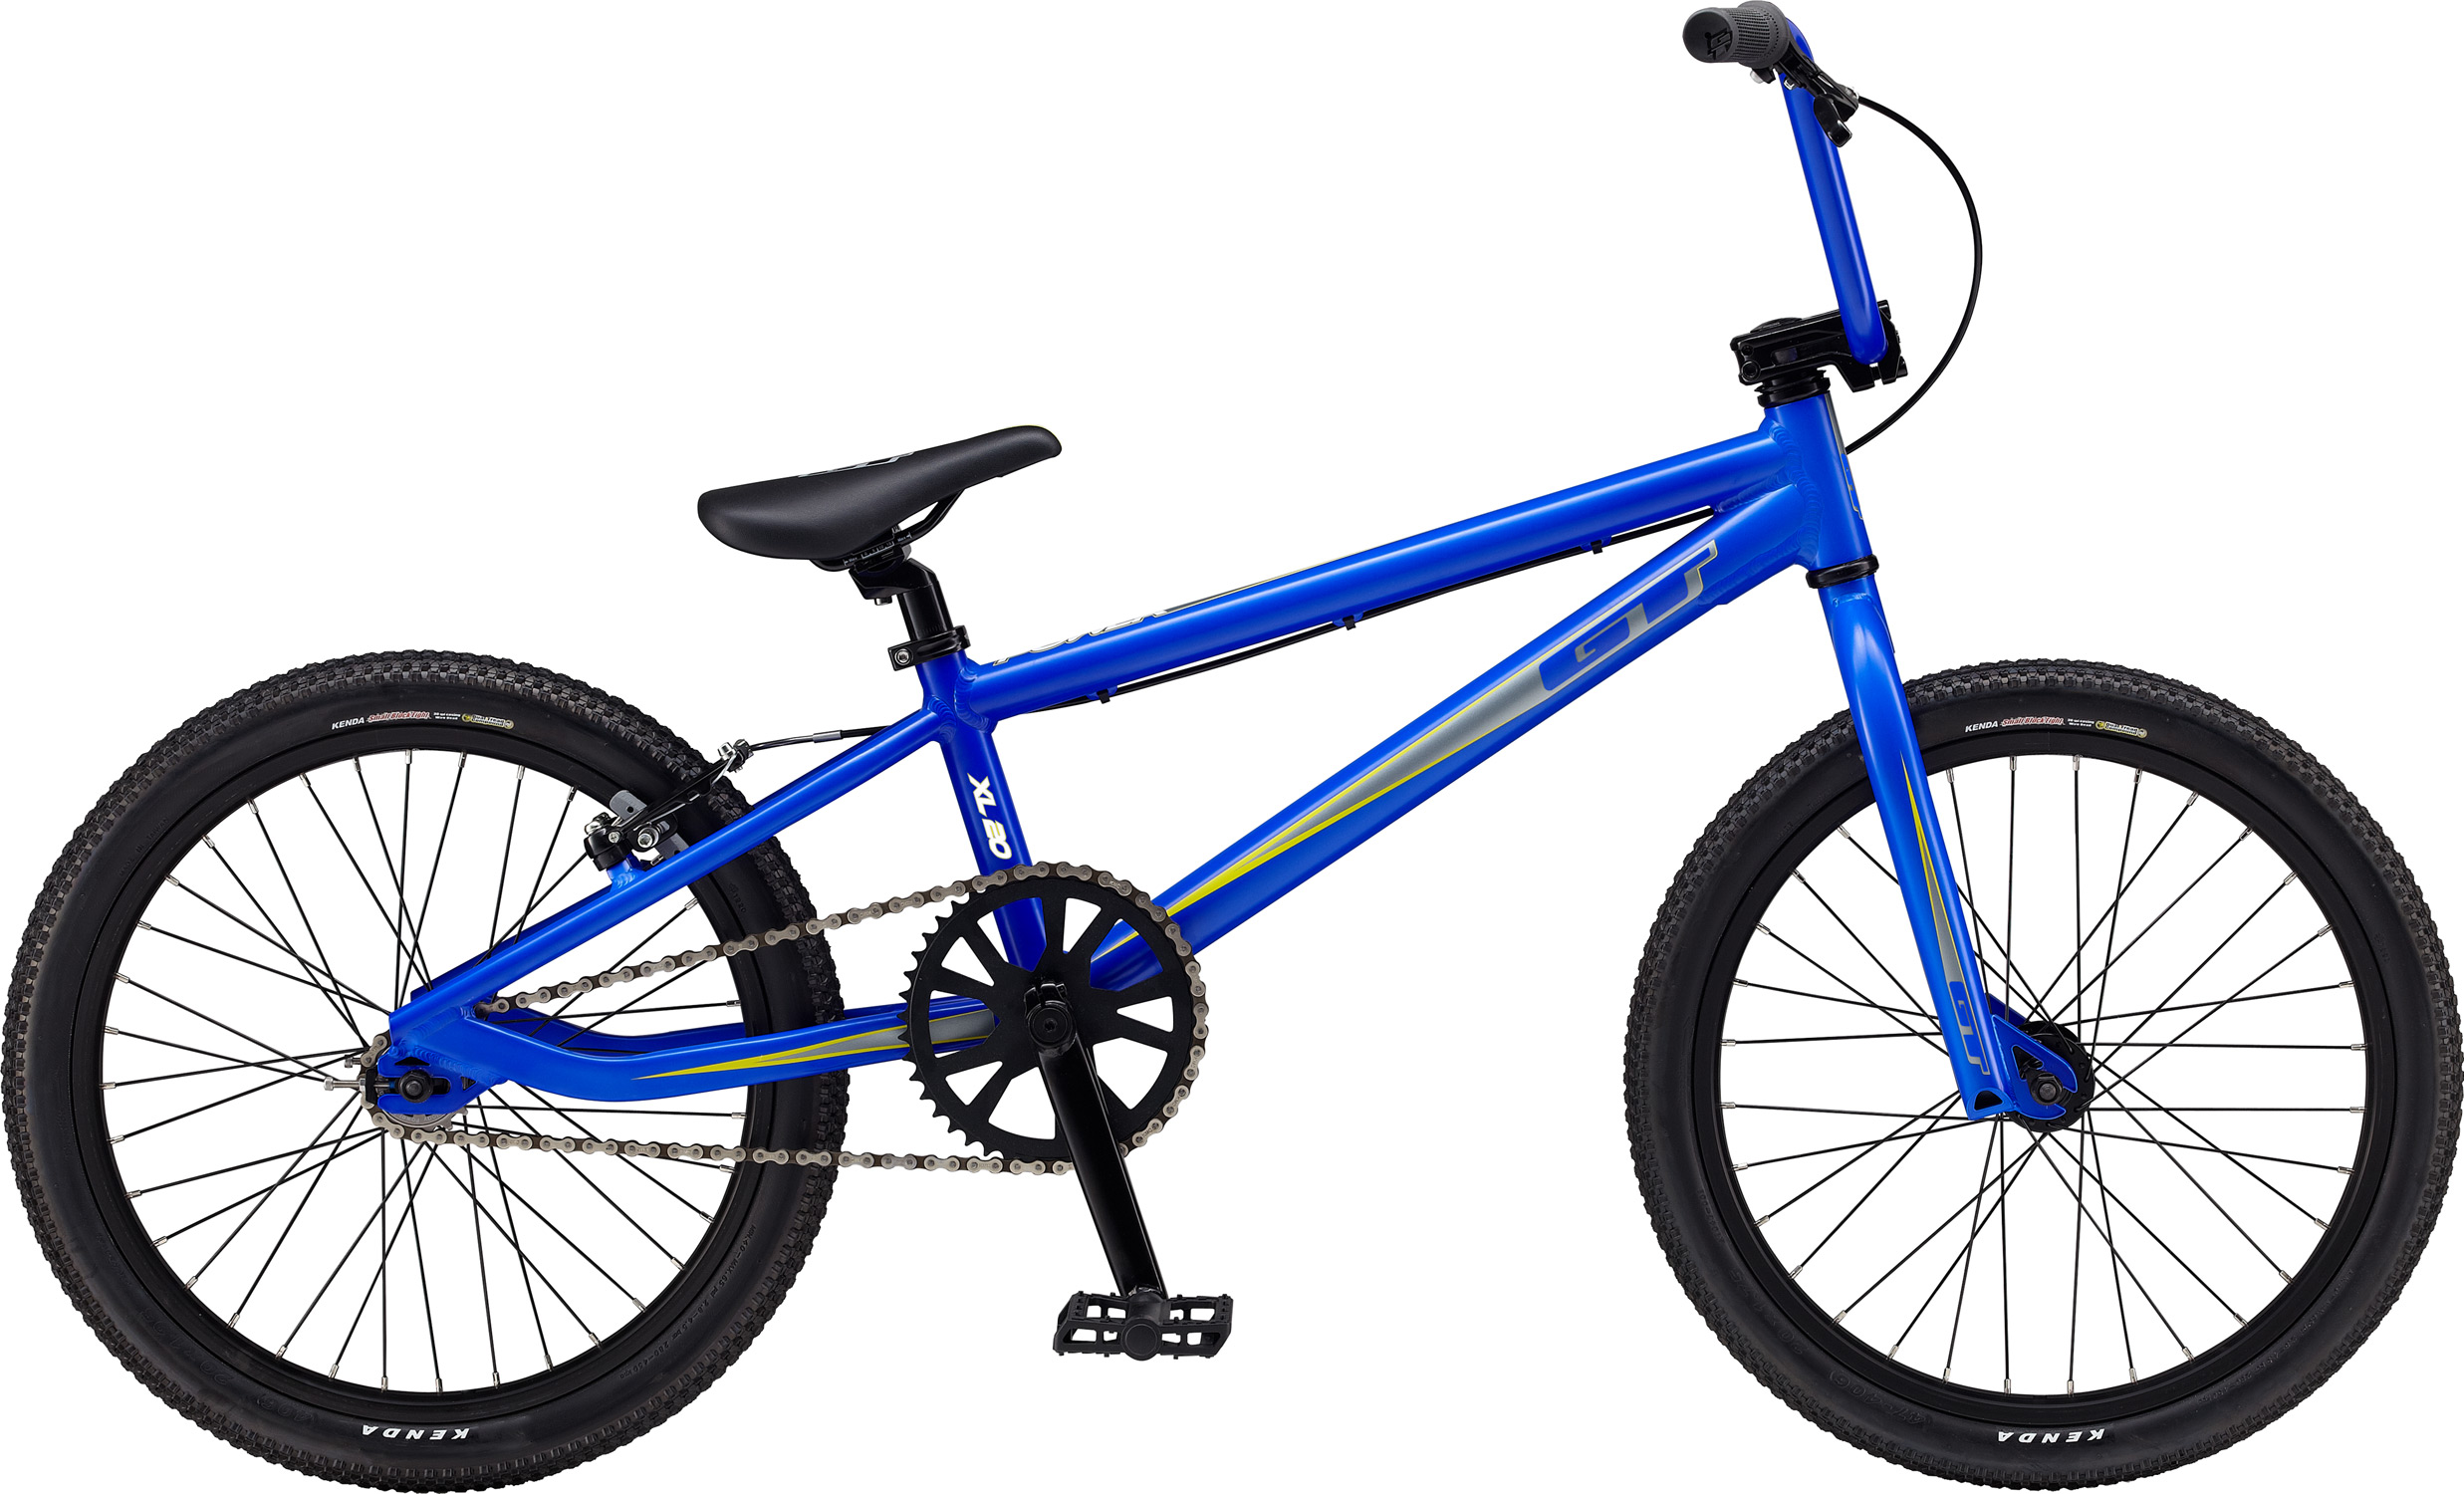 "BMX Key Features of the GT Power Series Pro XL BMX Bike 20"": Frame: NEW Straight Gauge, 6061 Aluminum Fork: GT, 100% Cro-Mo, 31.8-28.6 Taper, 3/8, 1-1/8"" Crankset: GT Cro-Mo, 3 Pcs, 16T, 170mm AL 44T Wheels/Hubs: GT Mohawk 32 F, 36 R Hole Brakes: Tektro BX-310 - $259.95"